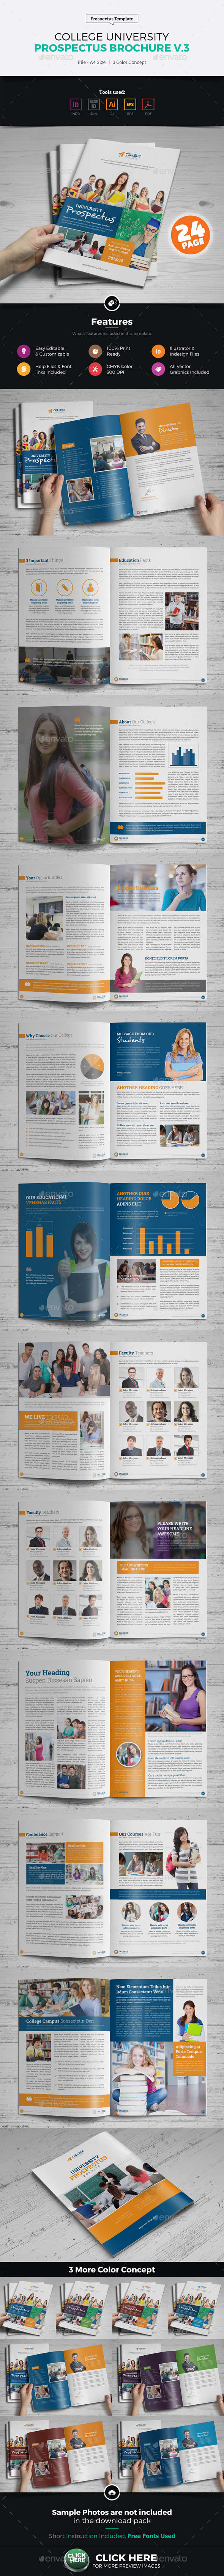 College University Prospectus Brochure v3 - Corporate Brochures